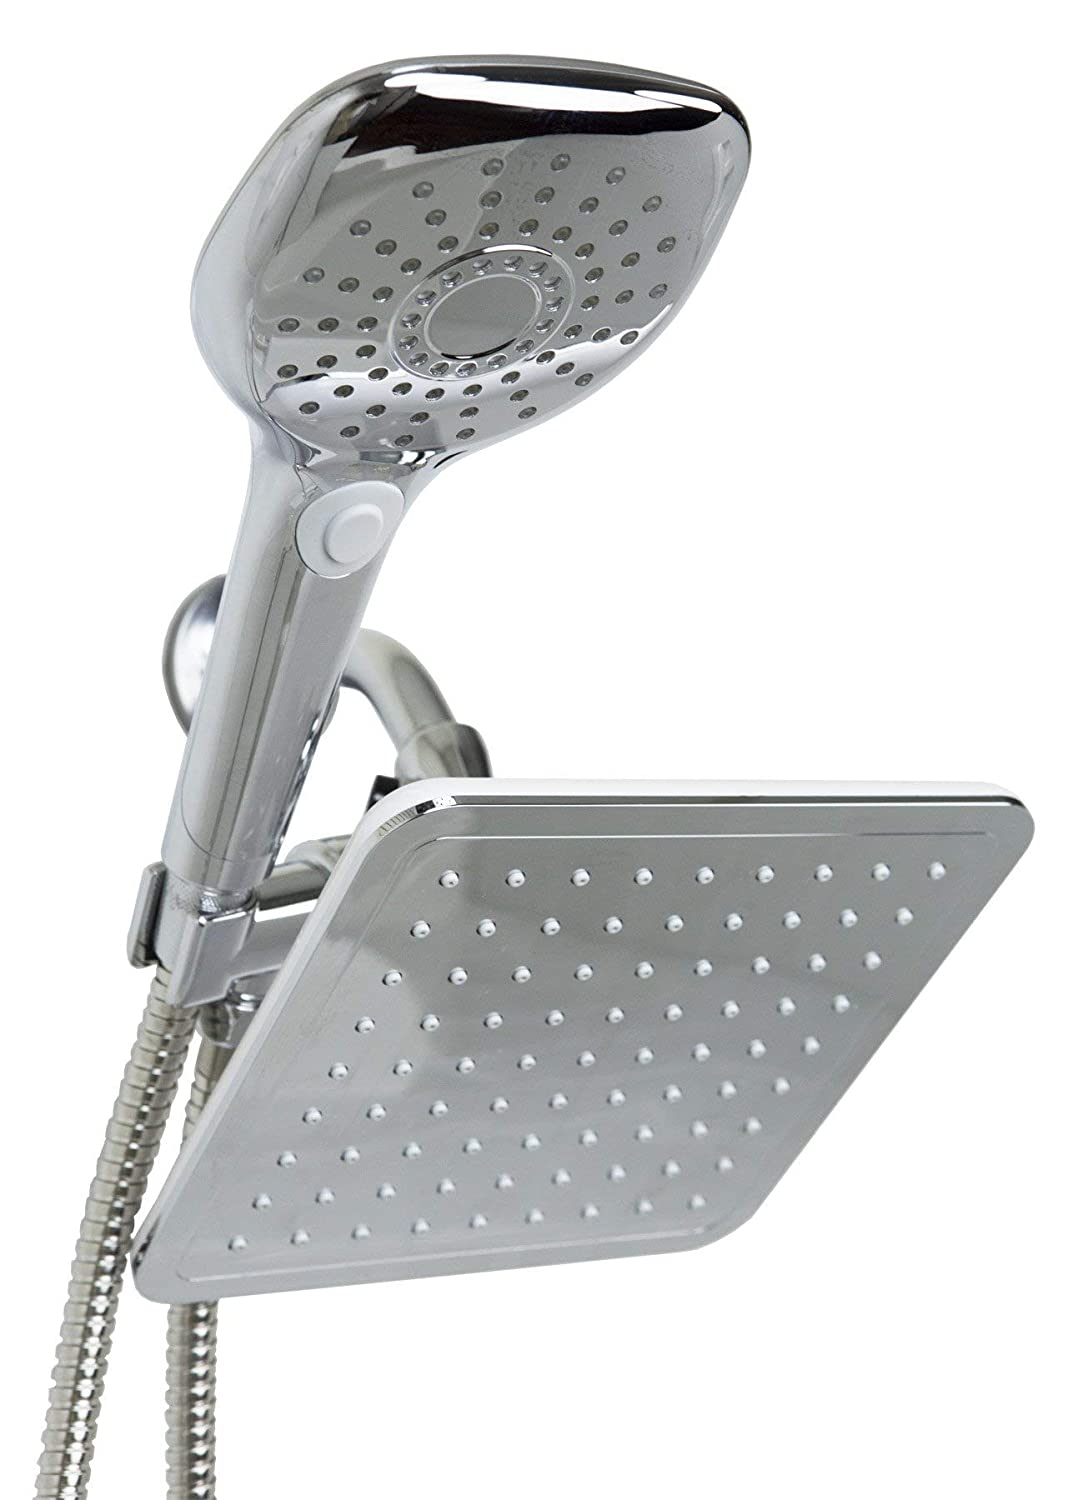 Home Basics Sunbeam 5 Function Dual Shower Massager with Rainfall Head Set